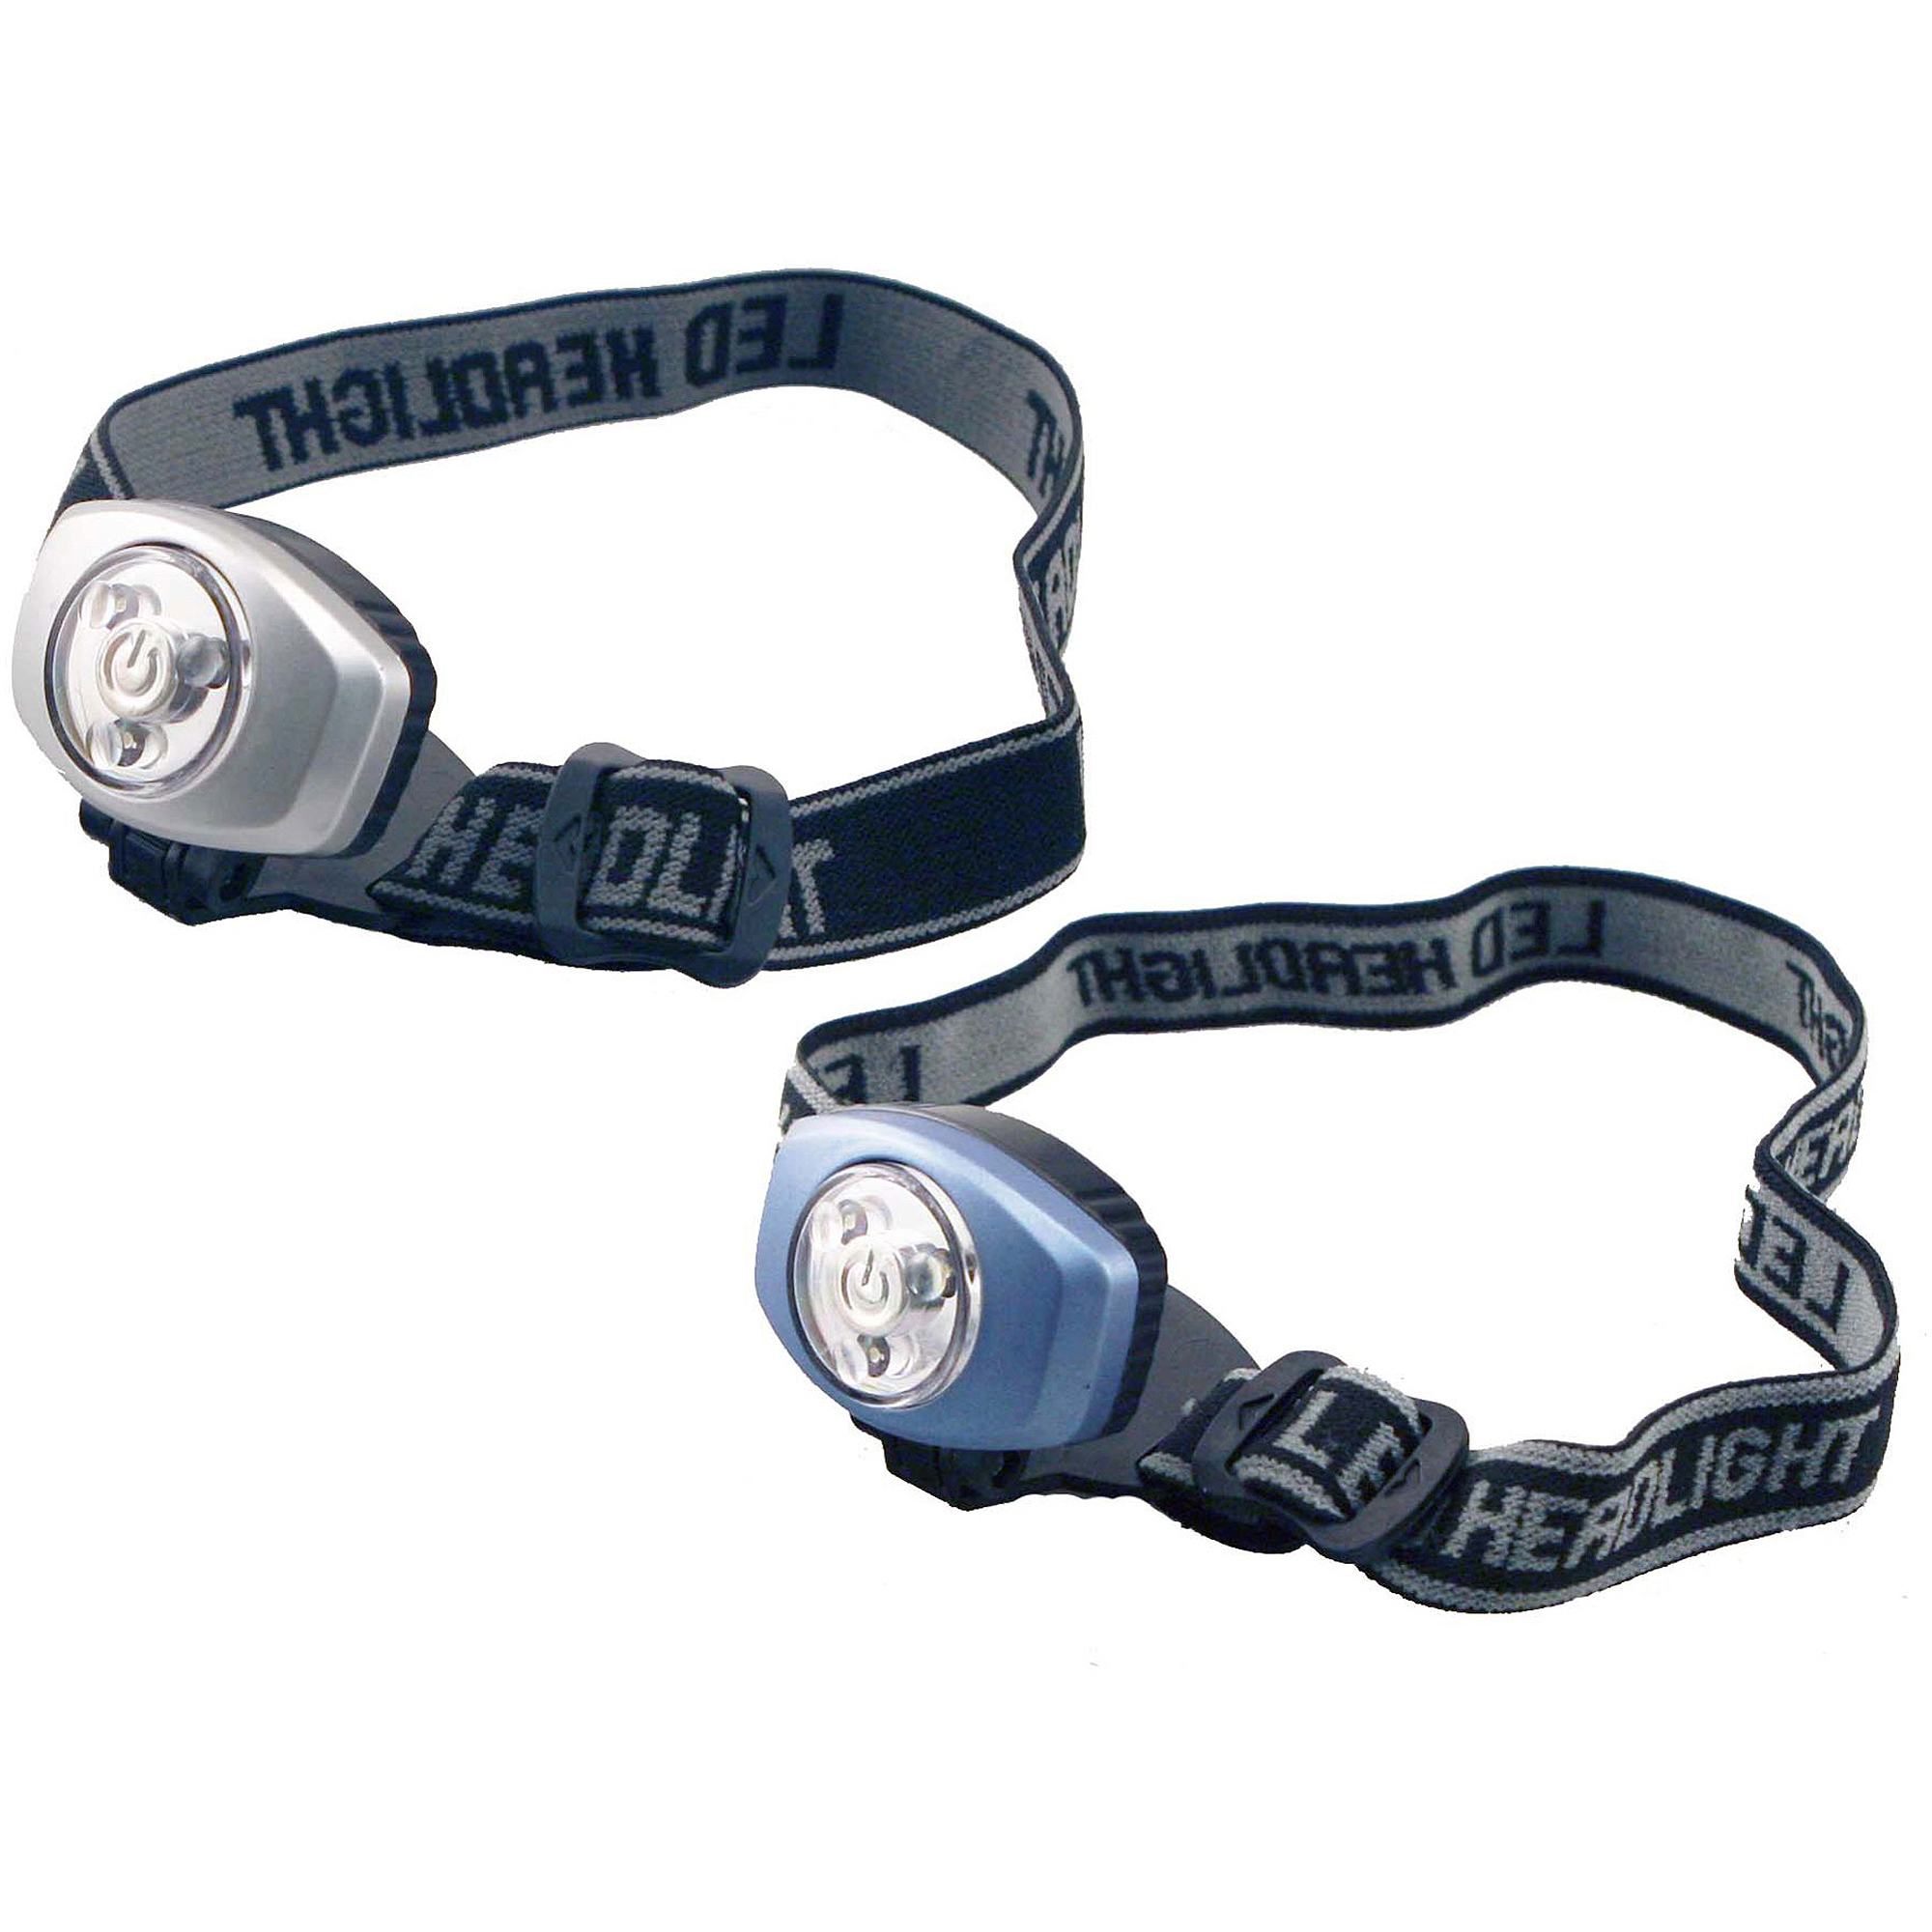 Sentry LTN-LEDH2 LED Headlamps, 2pk, Silver/Blue